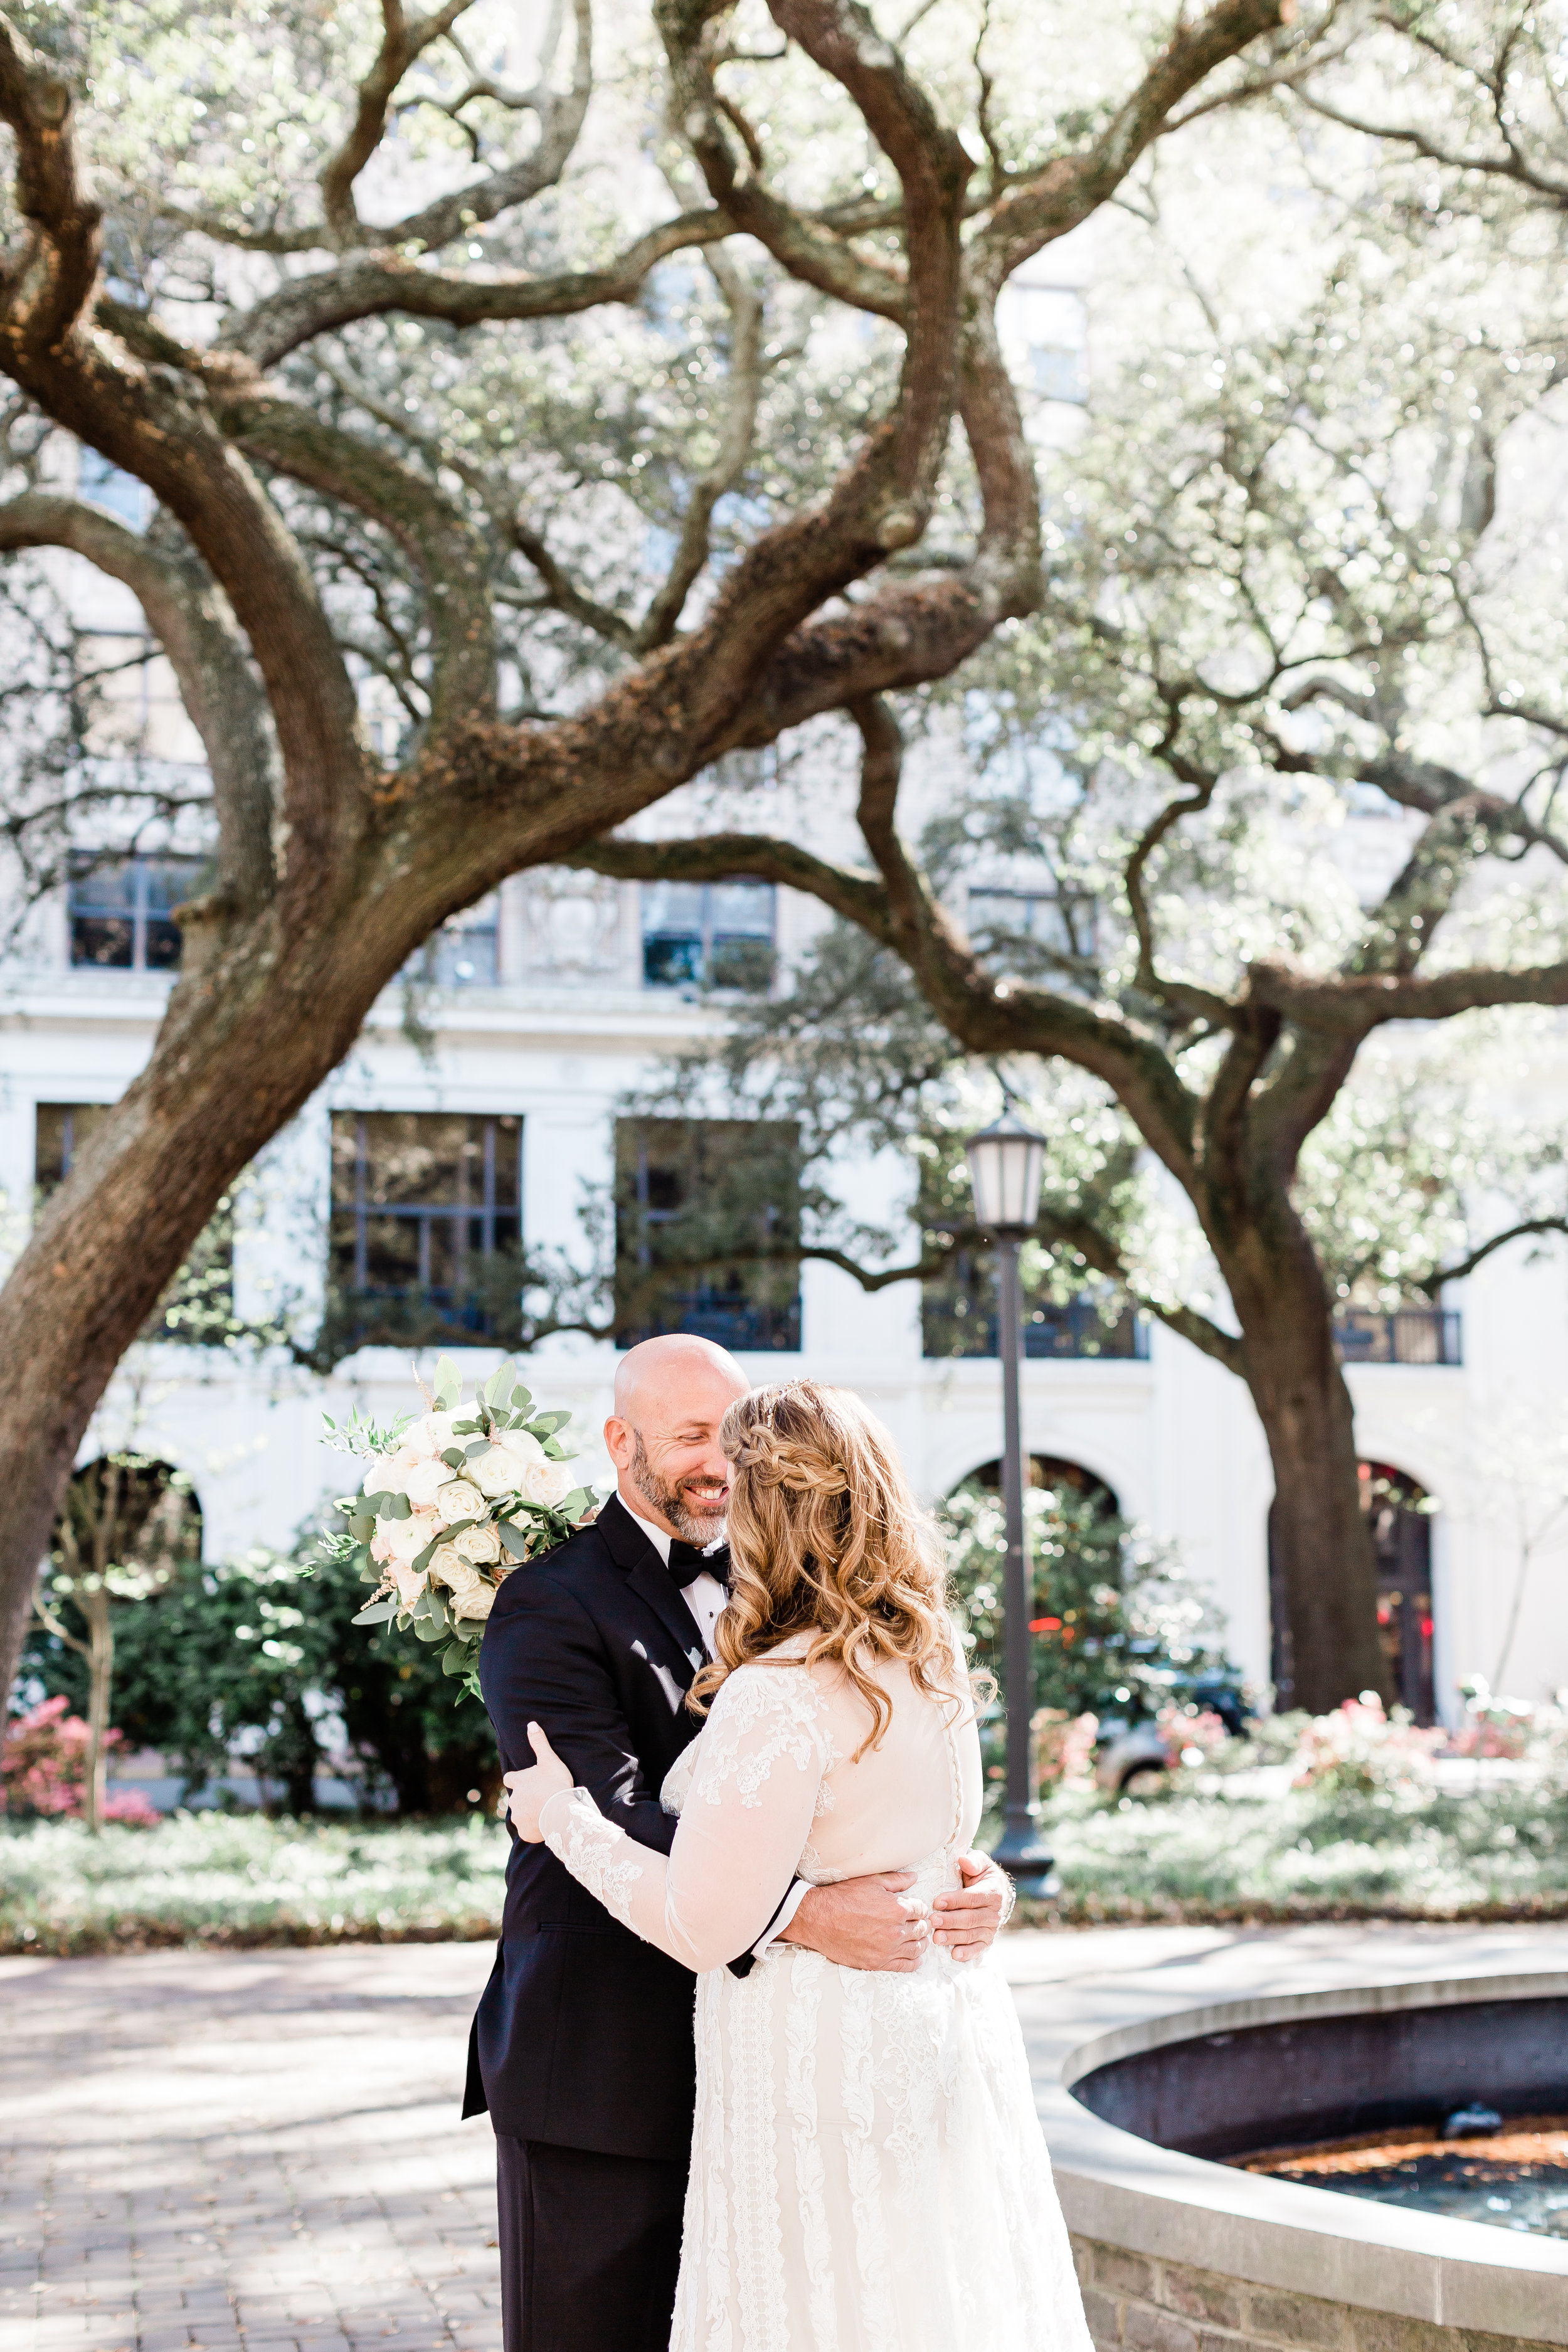 20190323-Georgia-andaz hotel-Dani and Sean-Southern Lens Photography-Savannah Photographer-Apt B Photography-Vics on the river11.jpg